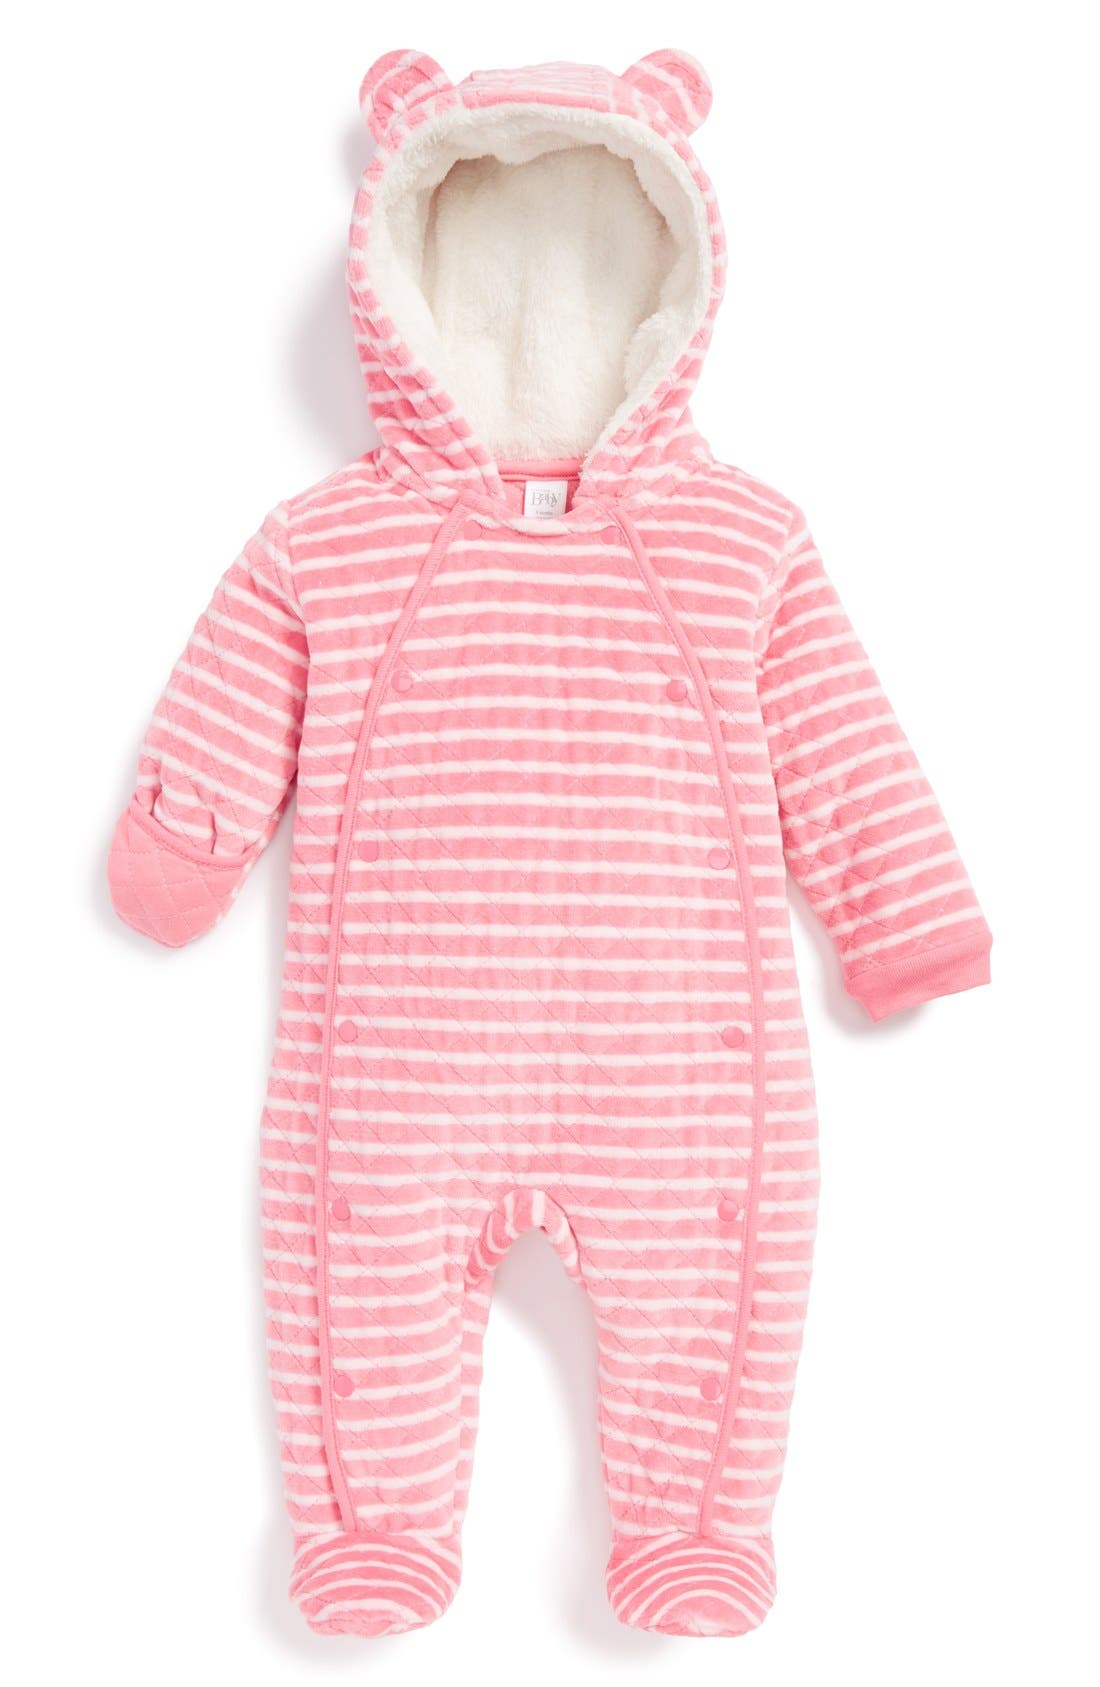 Alternate Image 1 Selected - Nordstrom Baby Hooded Bunting (Baby)